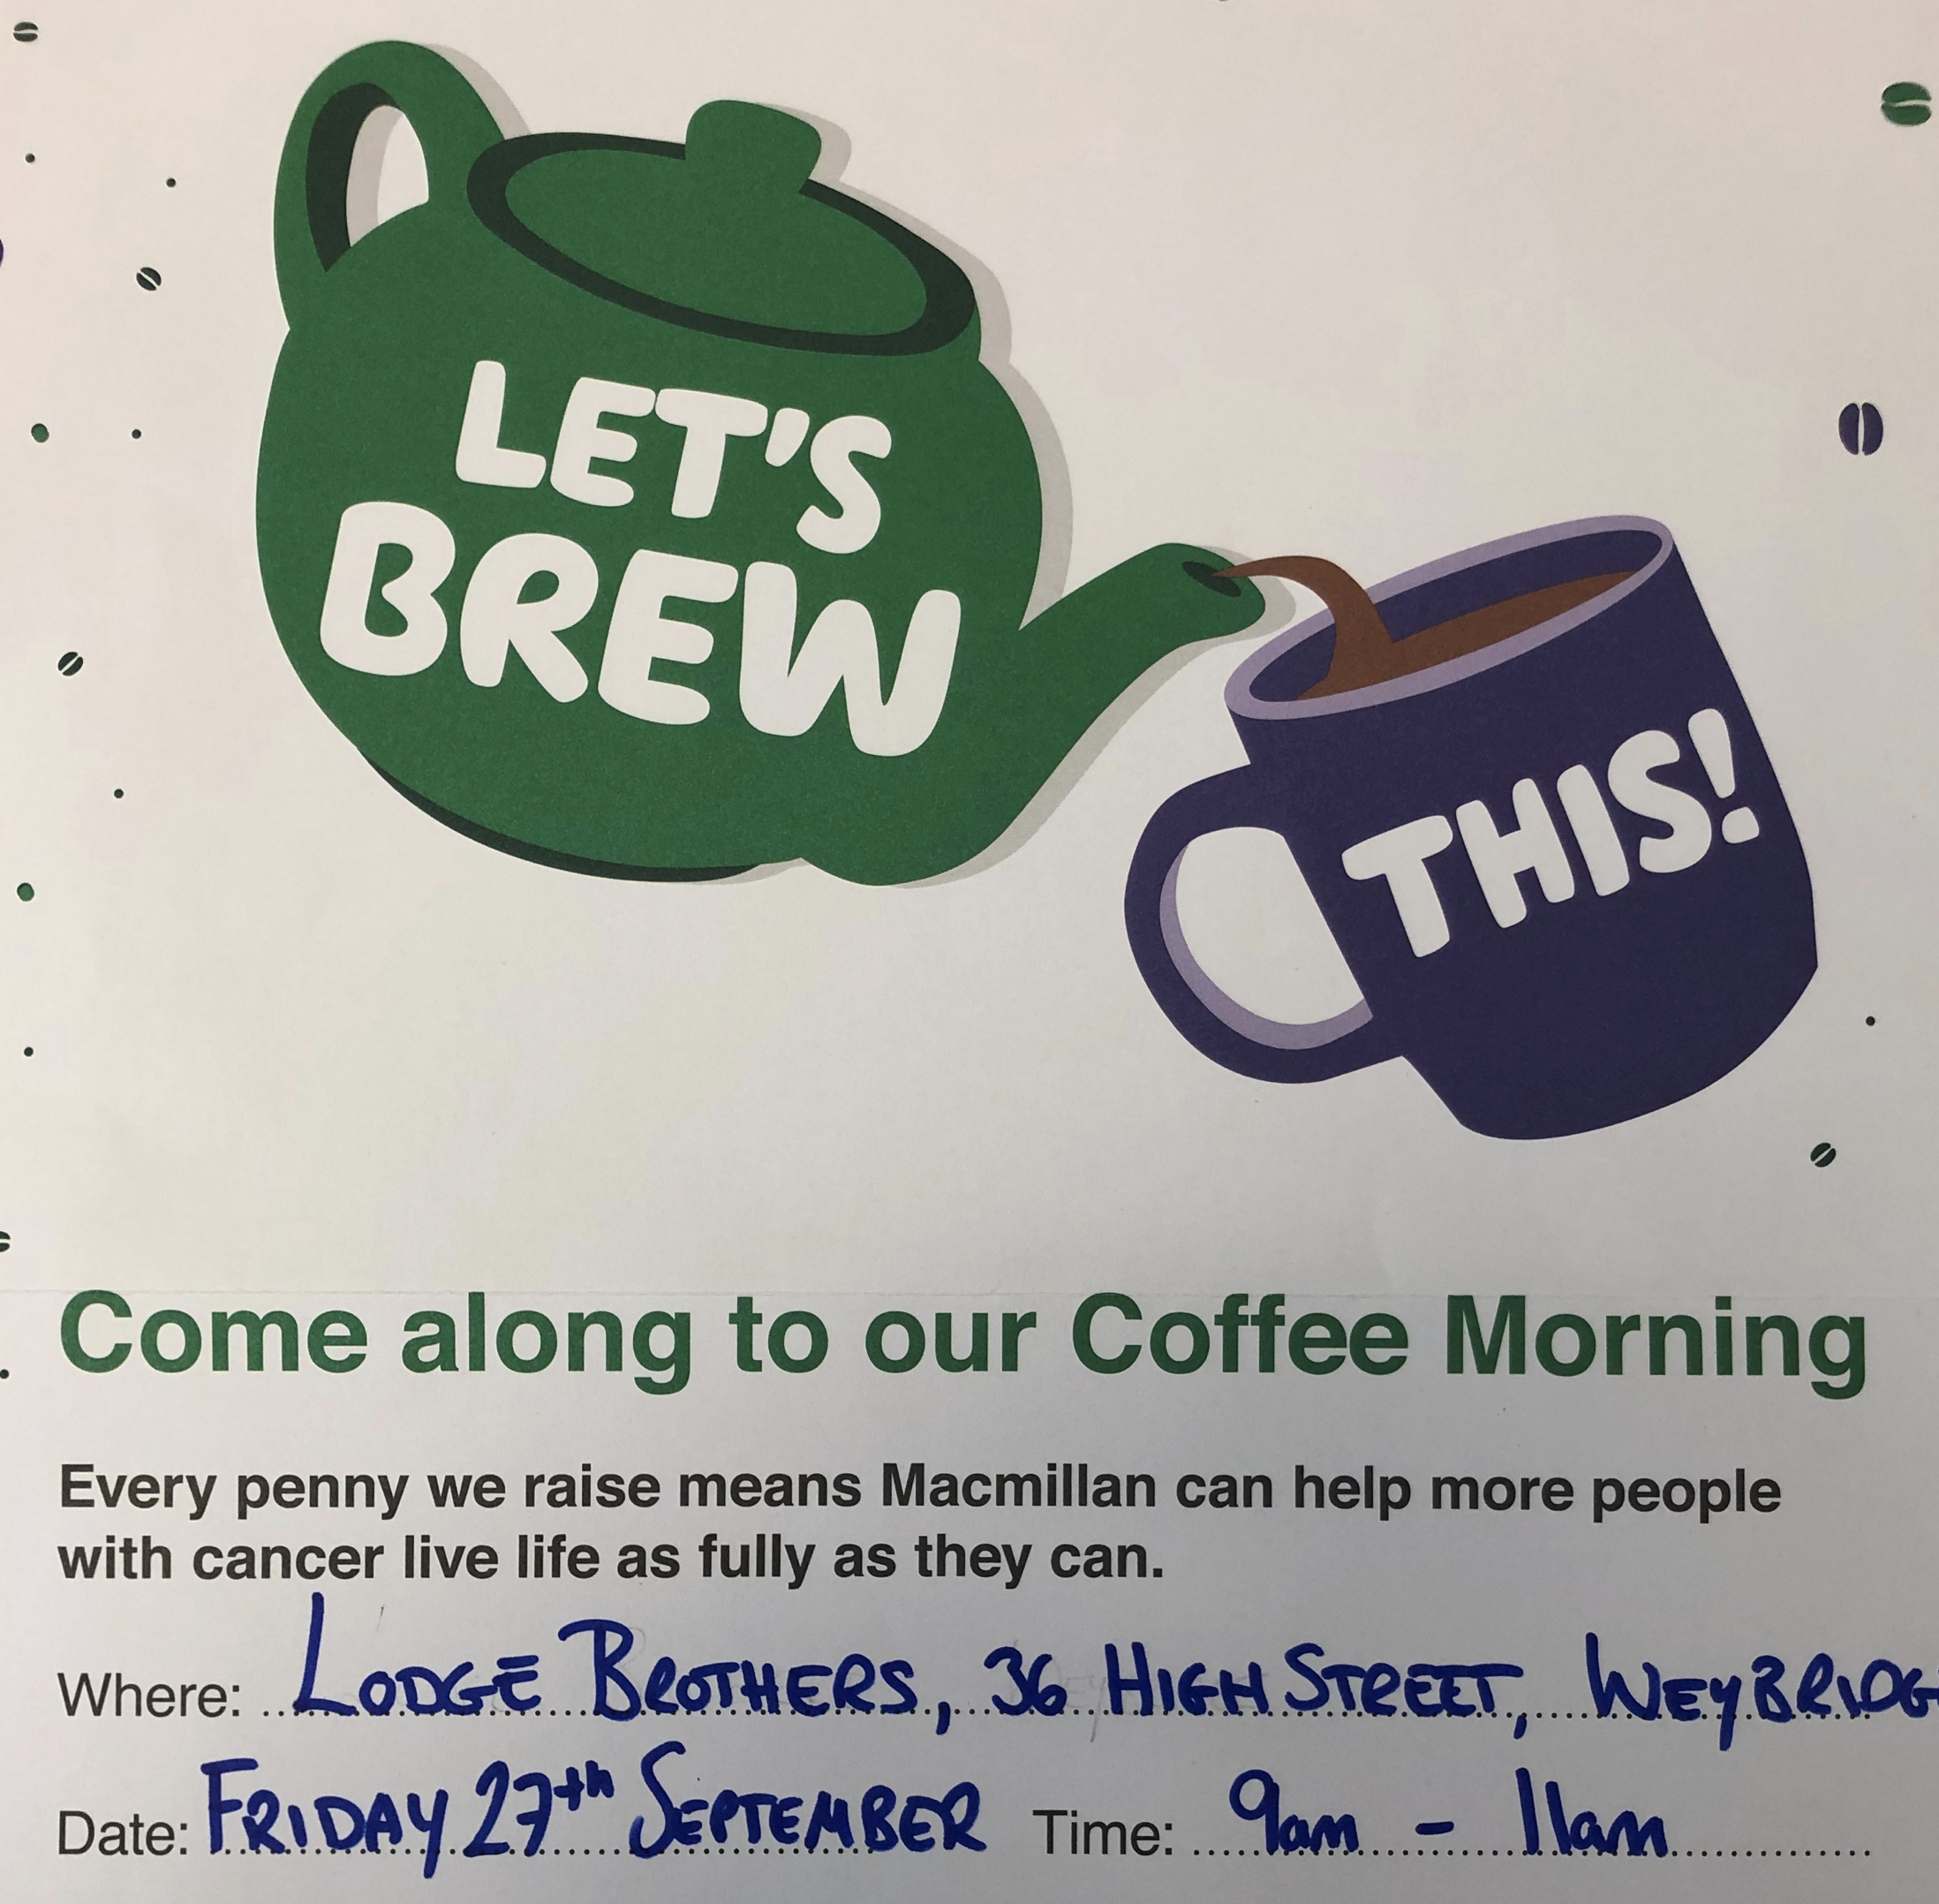 Macmillan Coffee Morning Weybridge Branch Friday 27th September